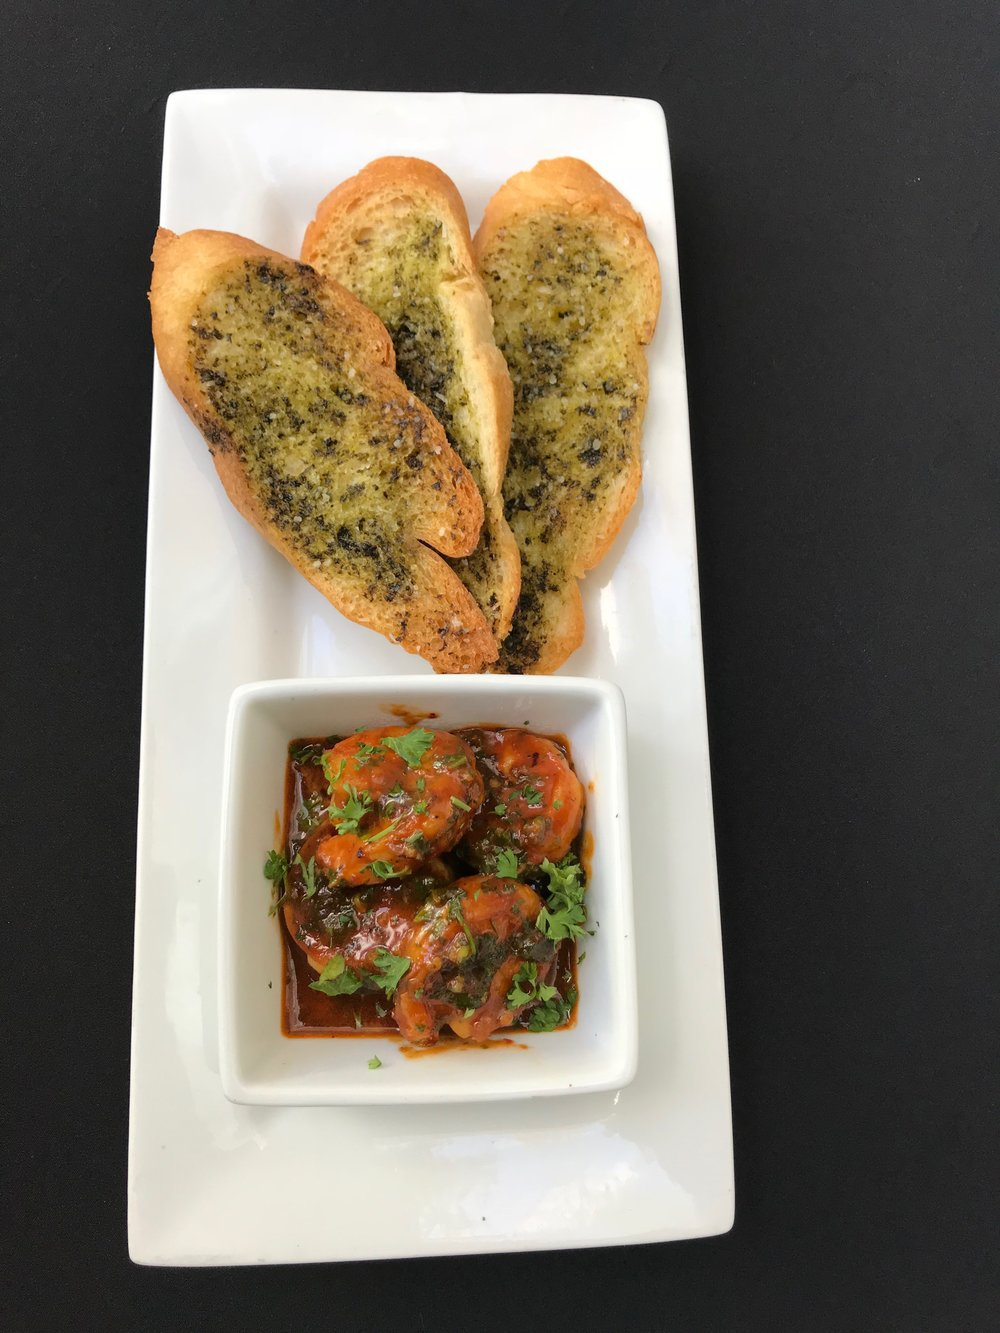 Moroccan Shrimp - Sautéed shrimp in a harissa paste, with ginger, cumin, coriander, and parsley. Served with a basil infused olive oil crostini